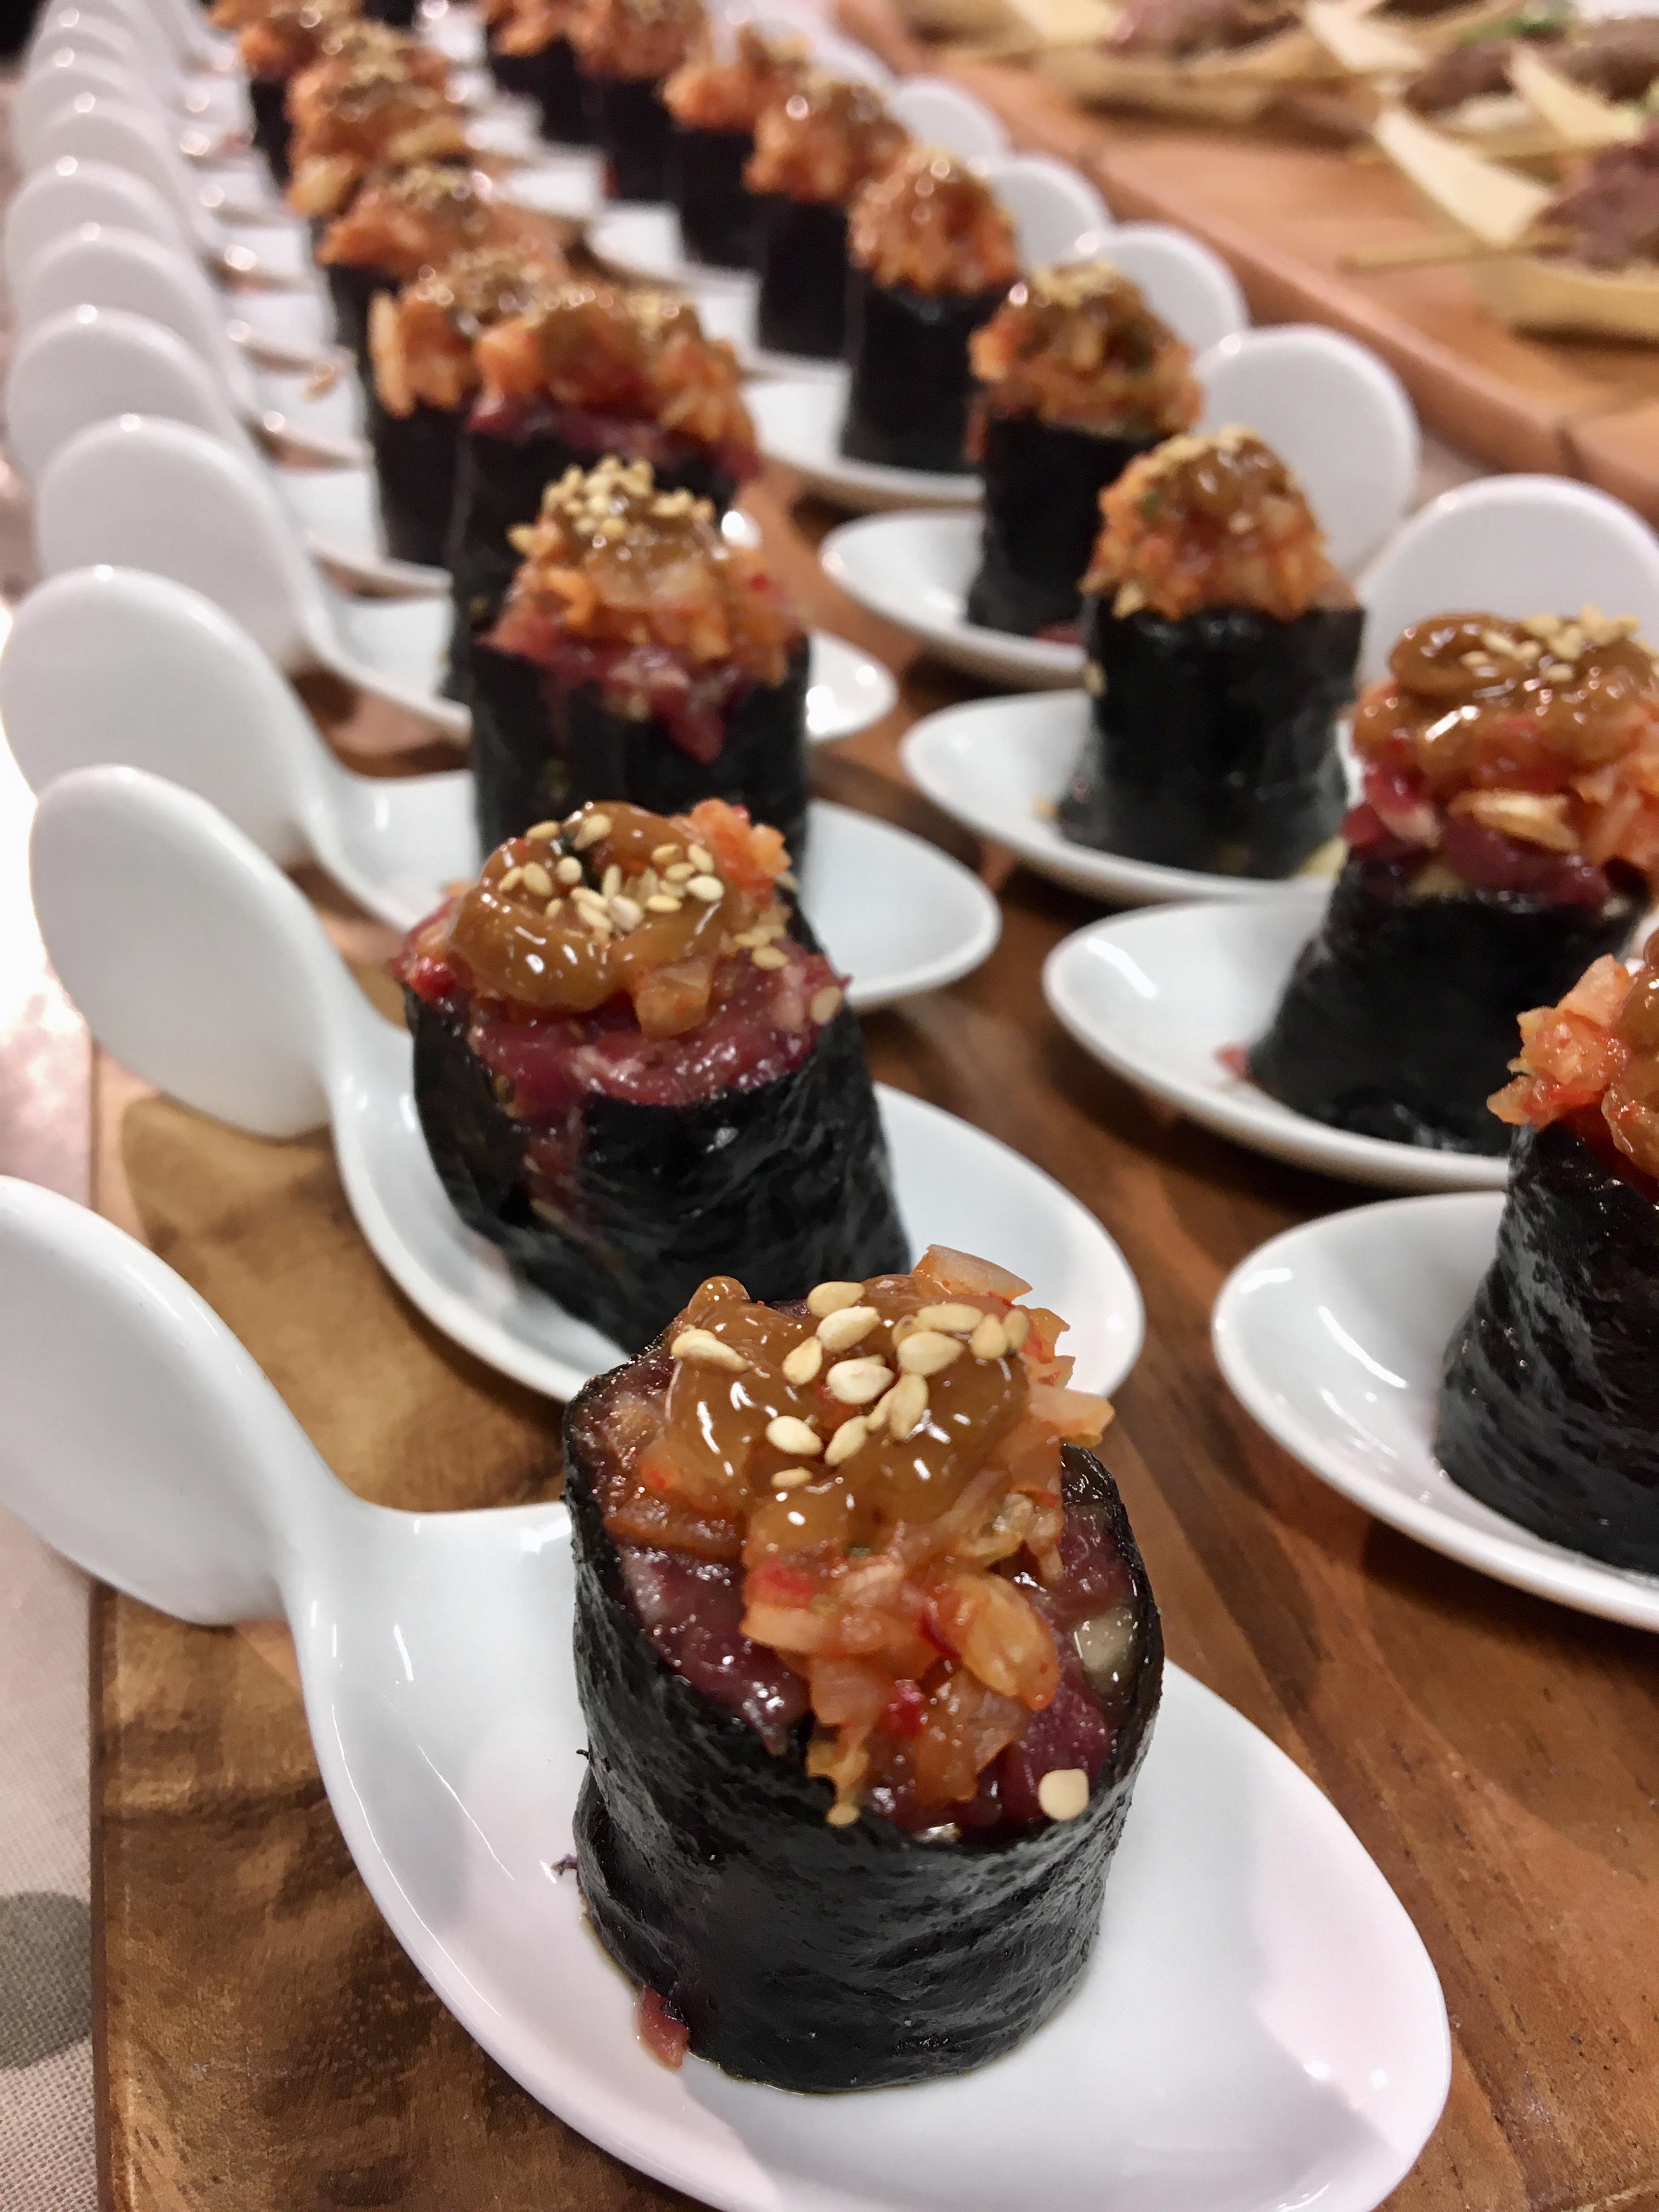 Finger Food With Jolanta – Korean-style Beef Tartare With Kimchi And Miso Mayo